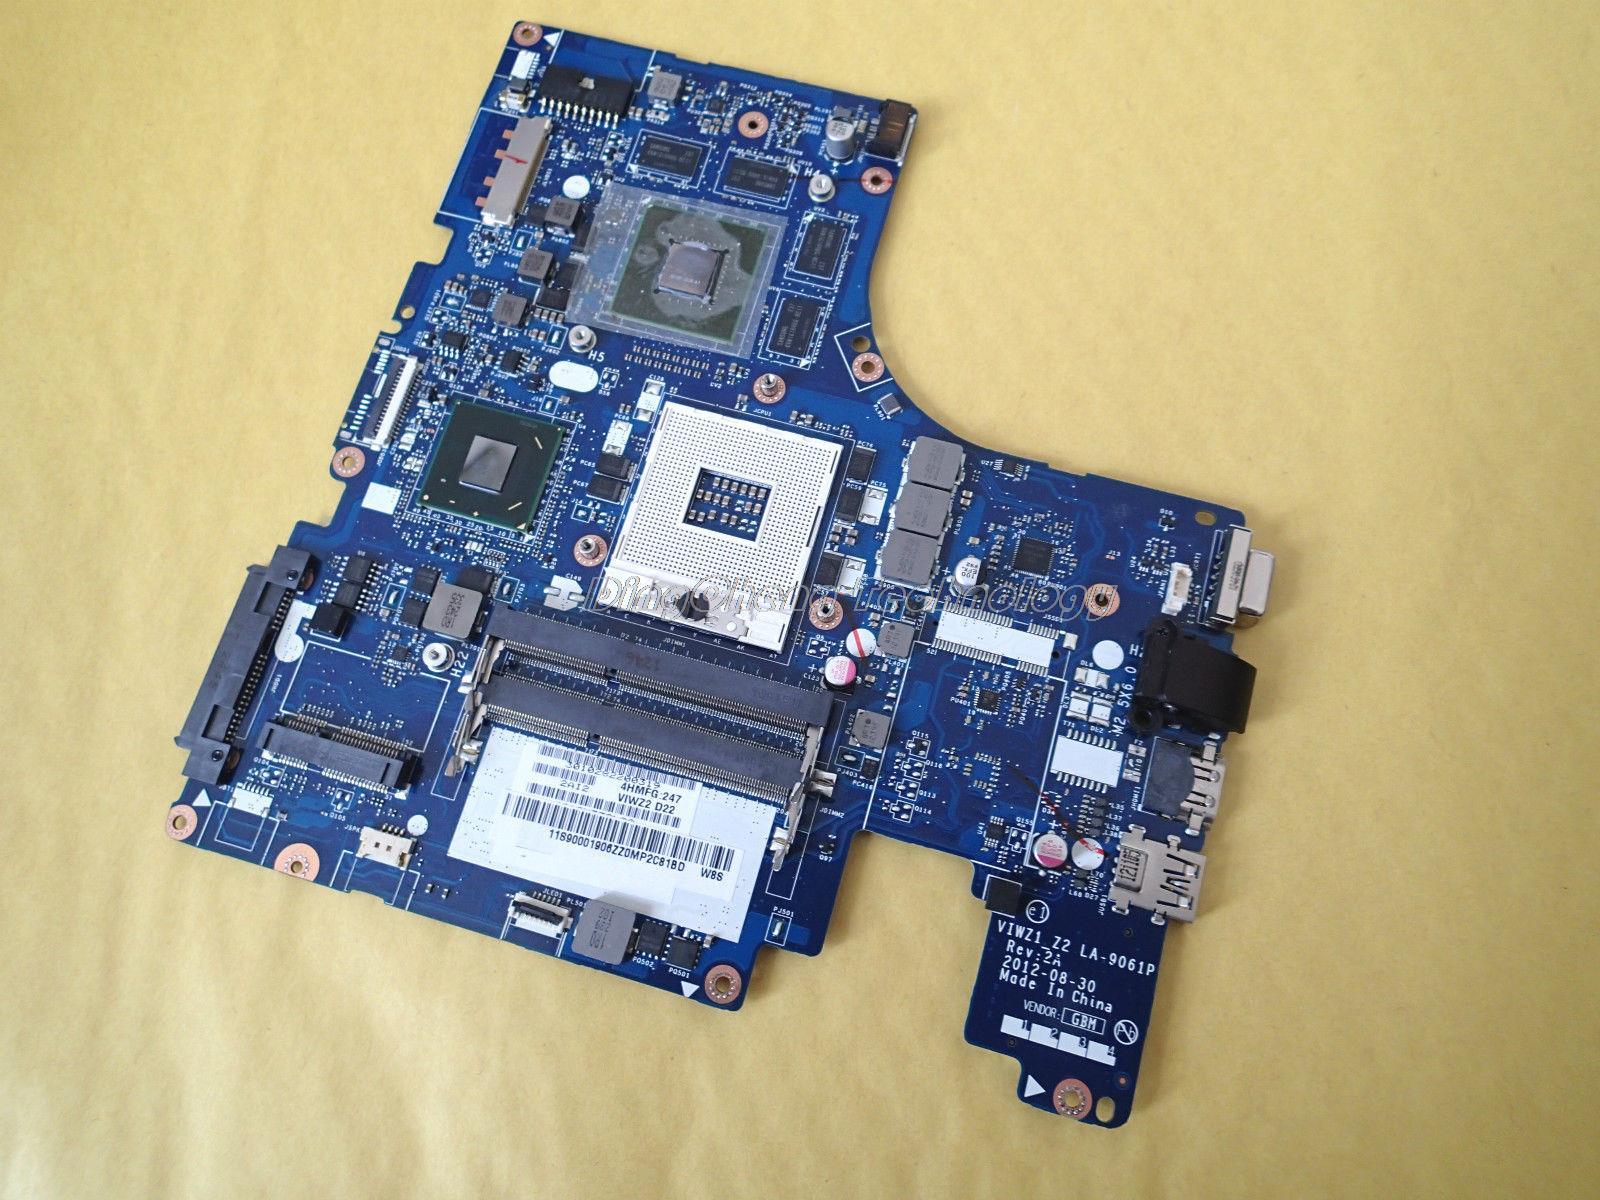 HOLYTIME laptop Motherboard/mainboard for Lenovo Z500 LA-9061P 11S90002112 VIWZ1 D84 non-integrated DDR3 100% tested FullyHOLYTIME laptop Motherboard/mainboard for Lenovo Z500 LA-9061P 11S90002112 VIWZ1 D84 non-integrated DDR3 100% tested Fully